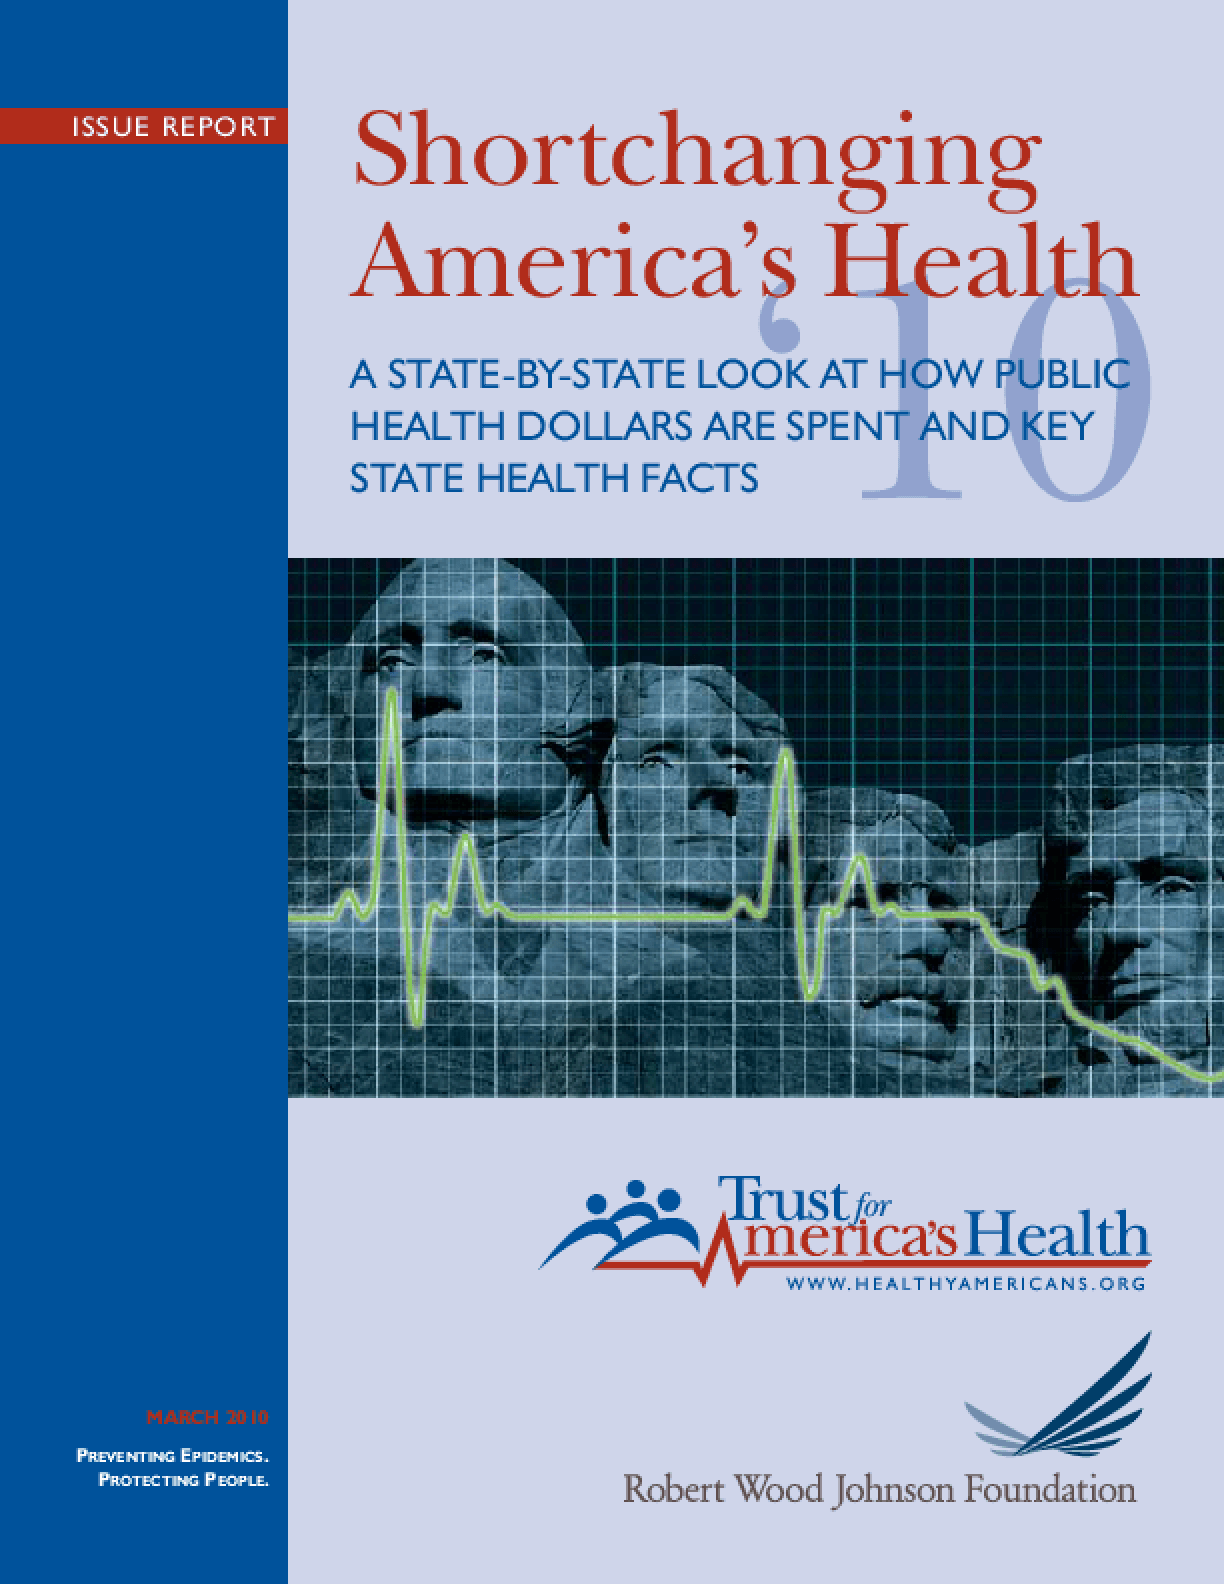 Shortchanging America's Health: A State-by-State Look at How Public Health Dollars Are Spent